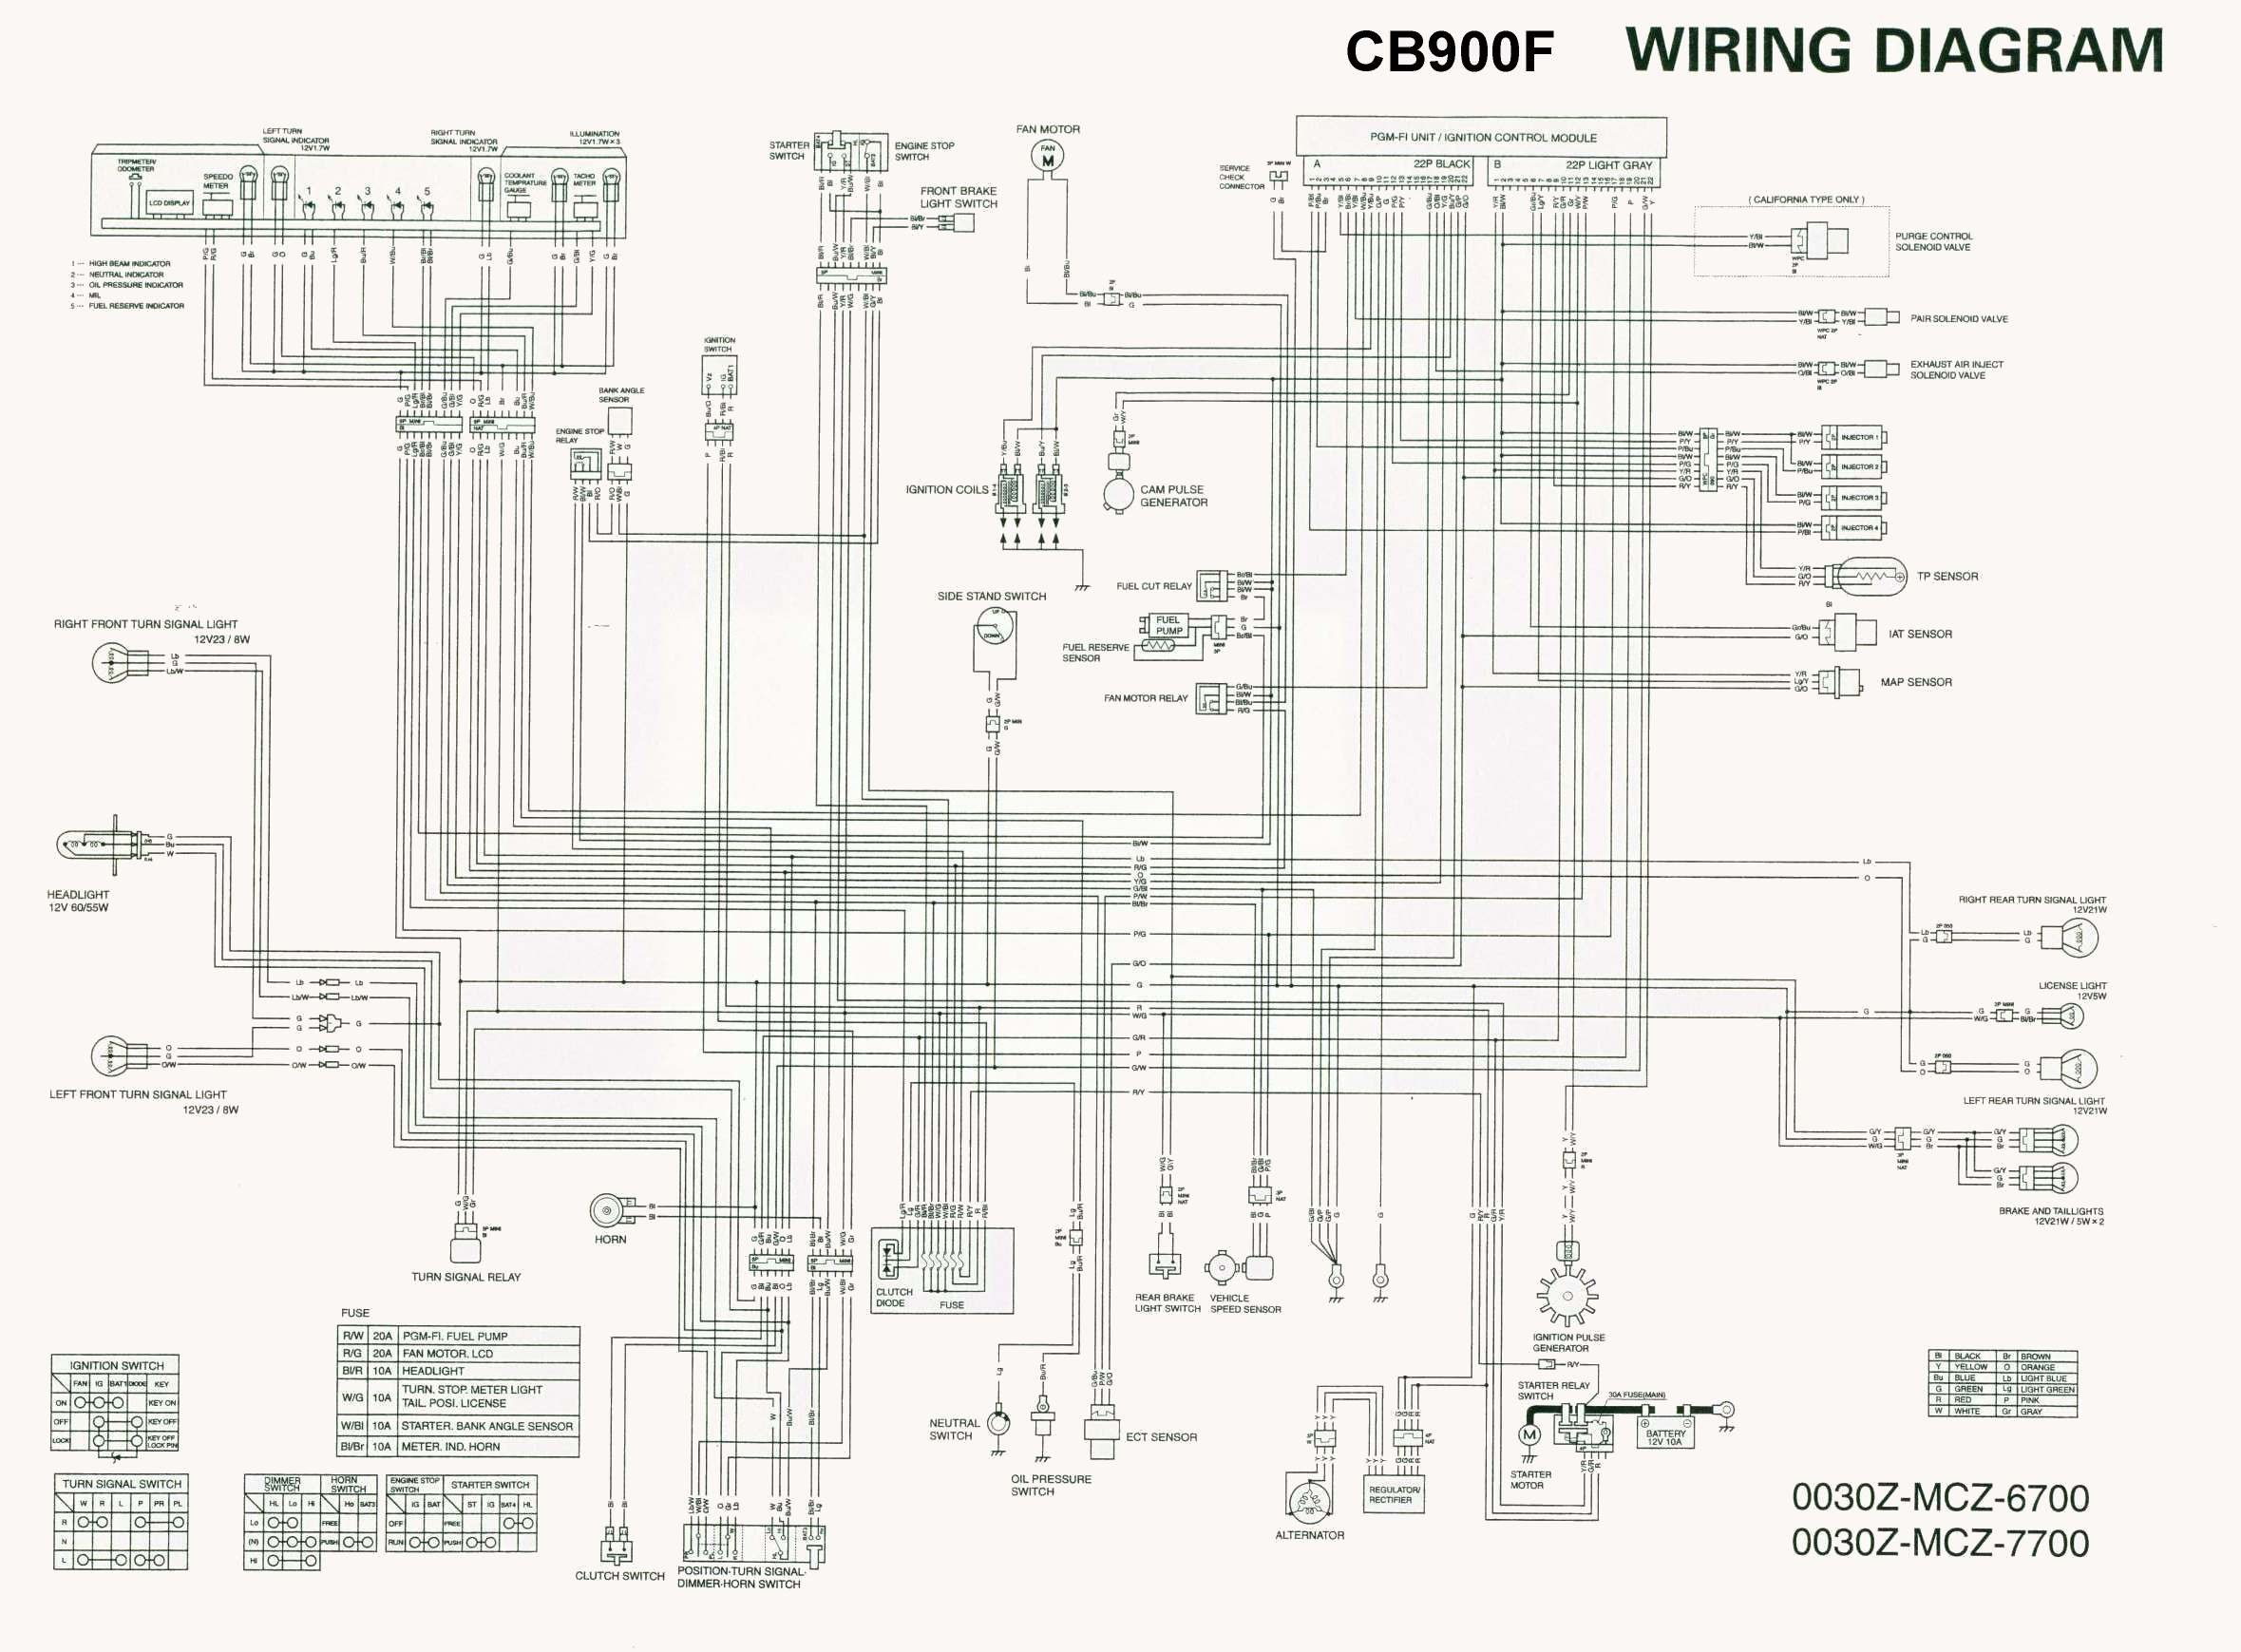 Kawasaki Wiring Diagrams Honda Cb 900 Wiring Diagram Honda Wiring Diagrams Instructions Of Kawasaki Wiring Diagrams